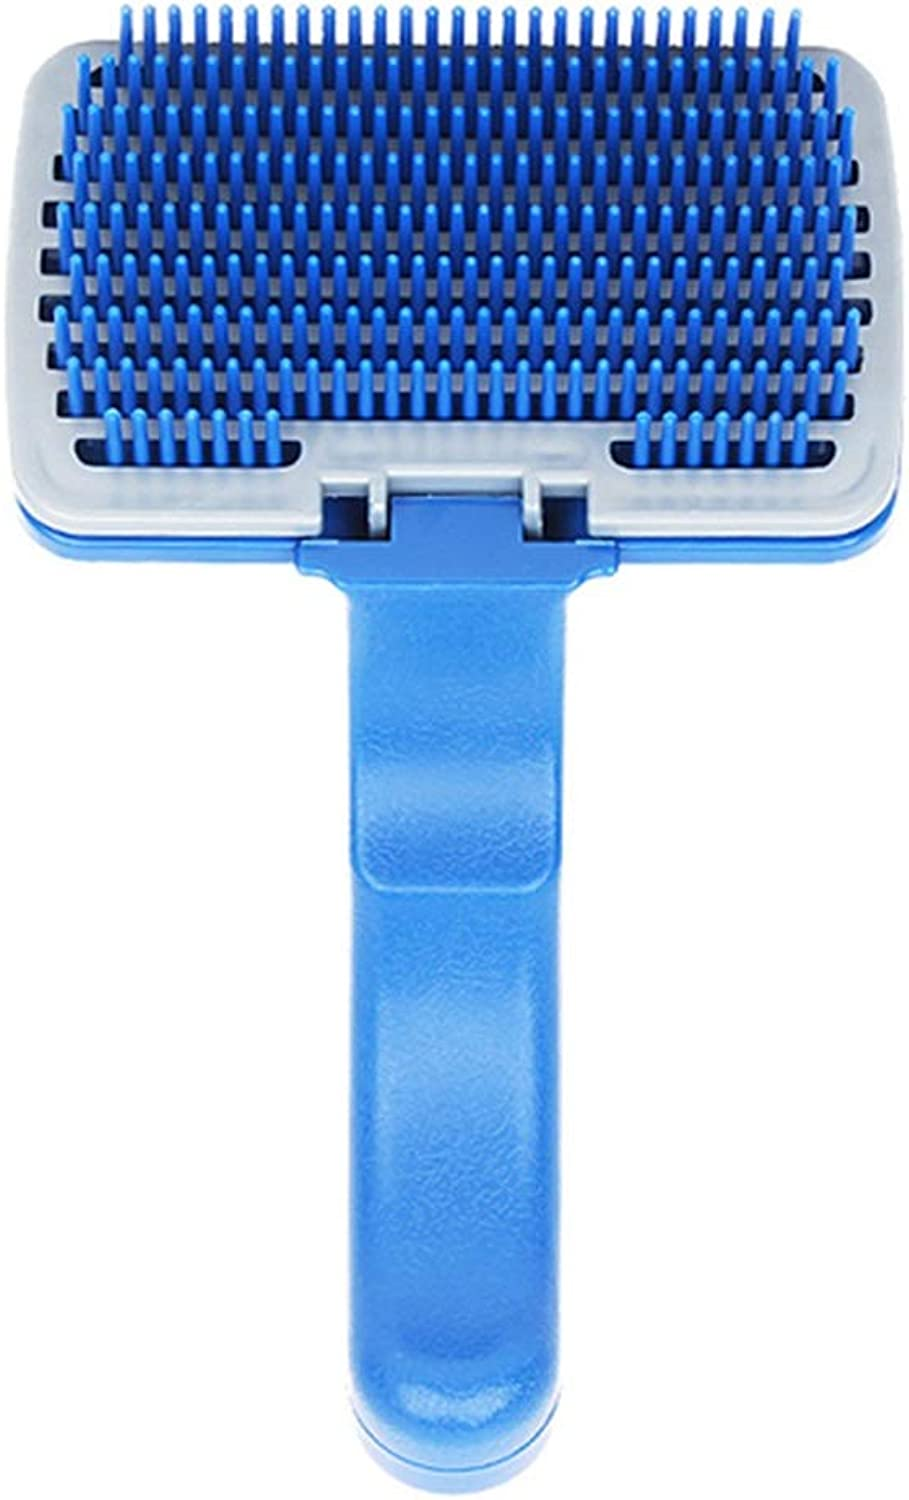 Pet Grooming Brush Professional DeShedding Tool with Grooming Massage One Button Hair Removal for Big Small Long Short Hair Dog Cat Brush (color   bluee, Size   B)